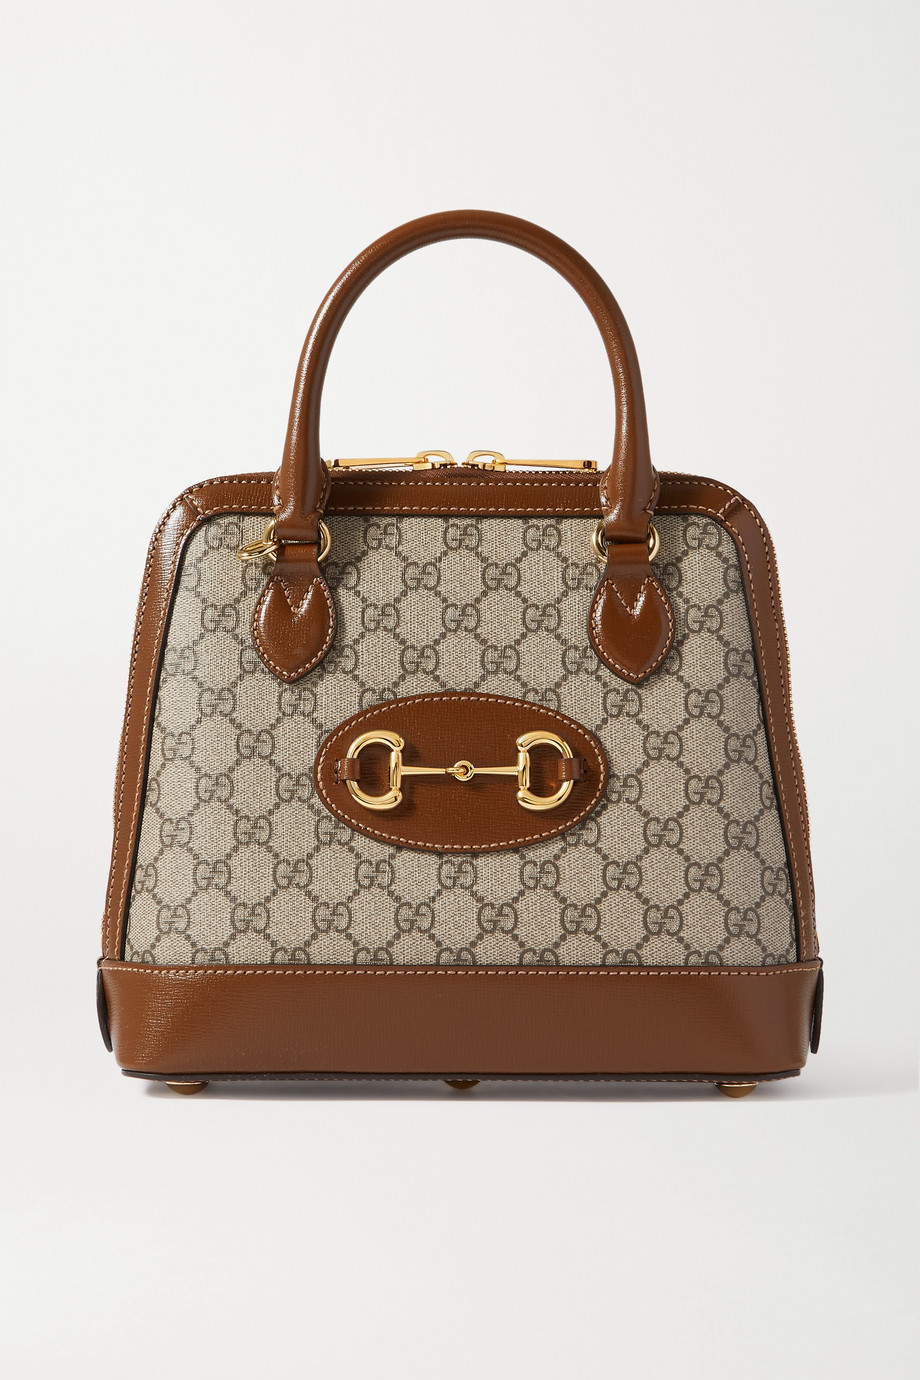 GUCCI 1955 horsebit-detailed leather-trimmed printed coated-canvas tote